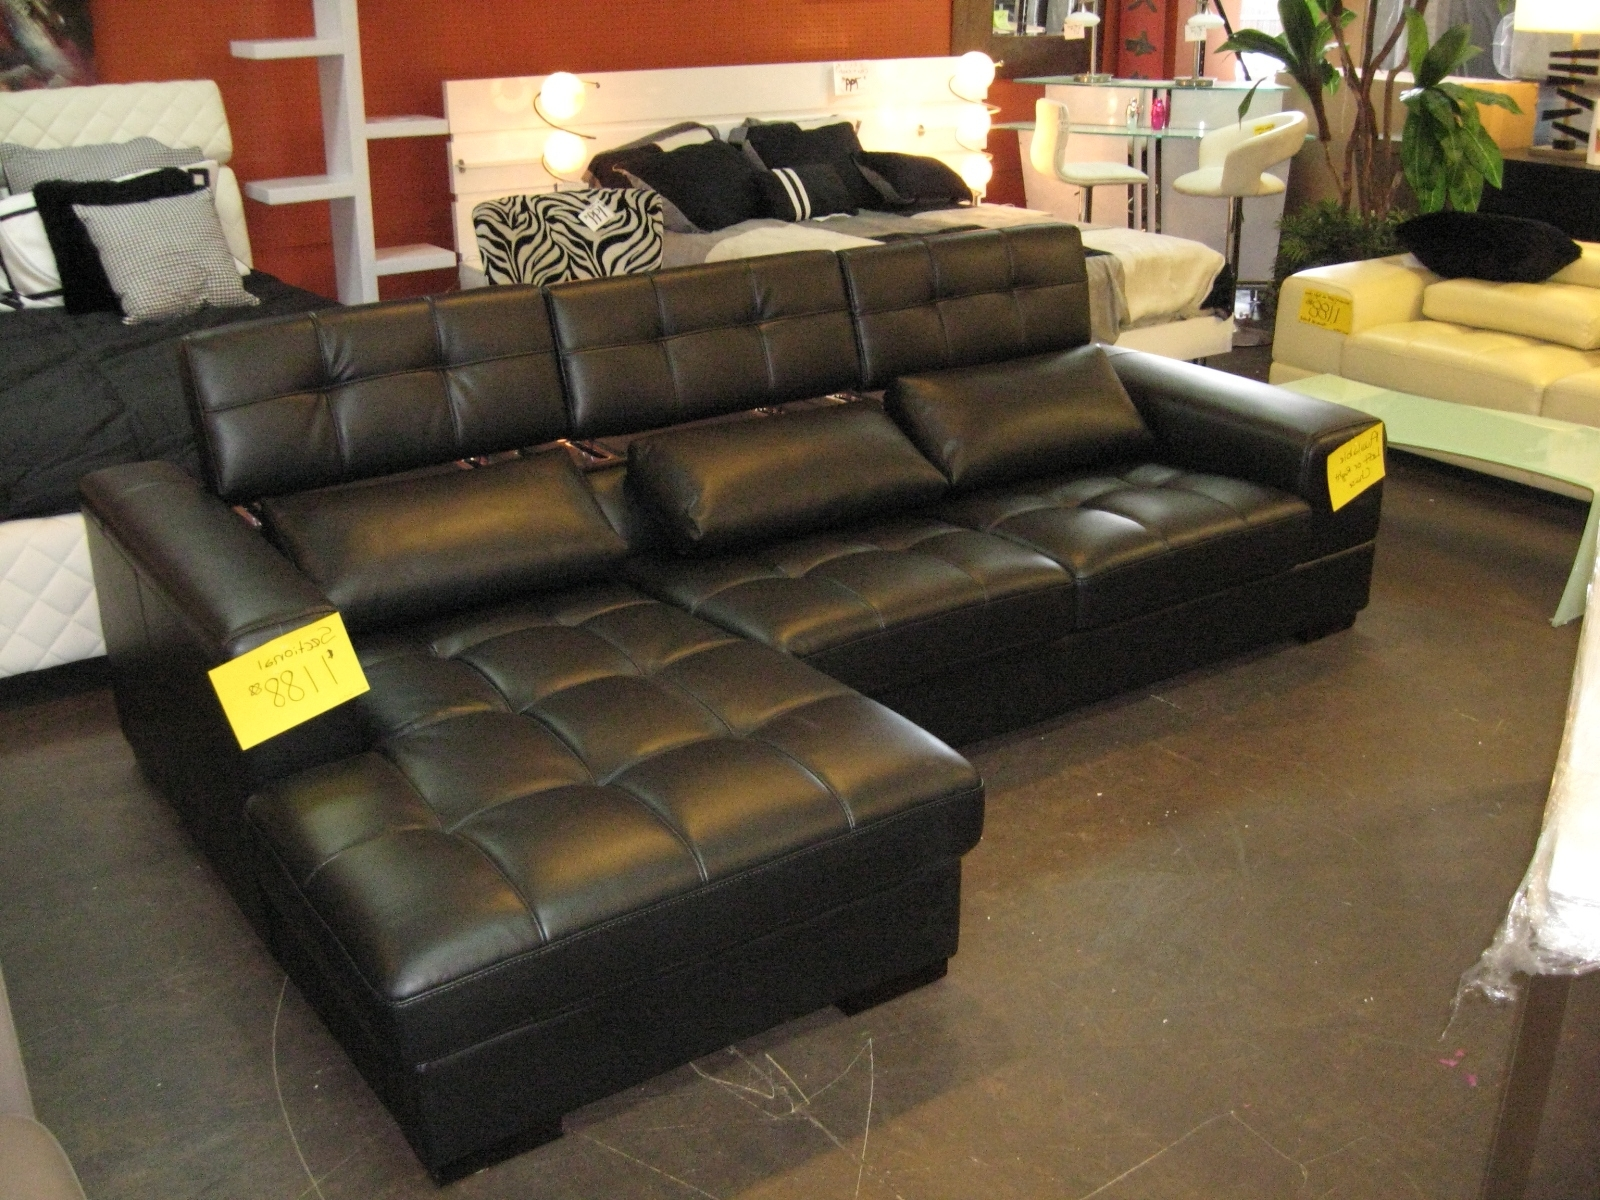 Living Room Design: Awesome Black Leather Sectional For Elegant In Well Liked Leather Modular Sectional Sofas (View 9 of 15)